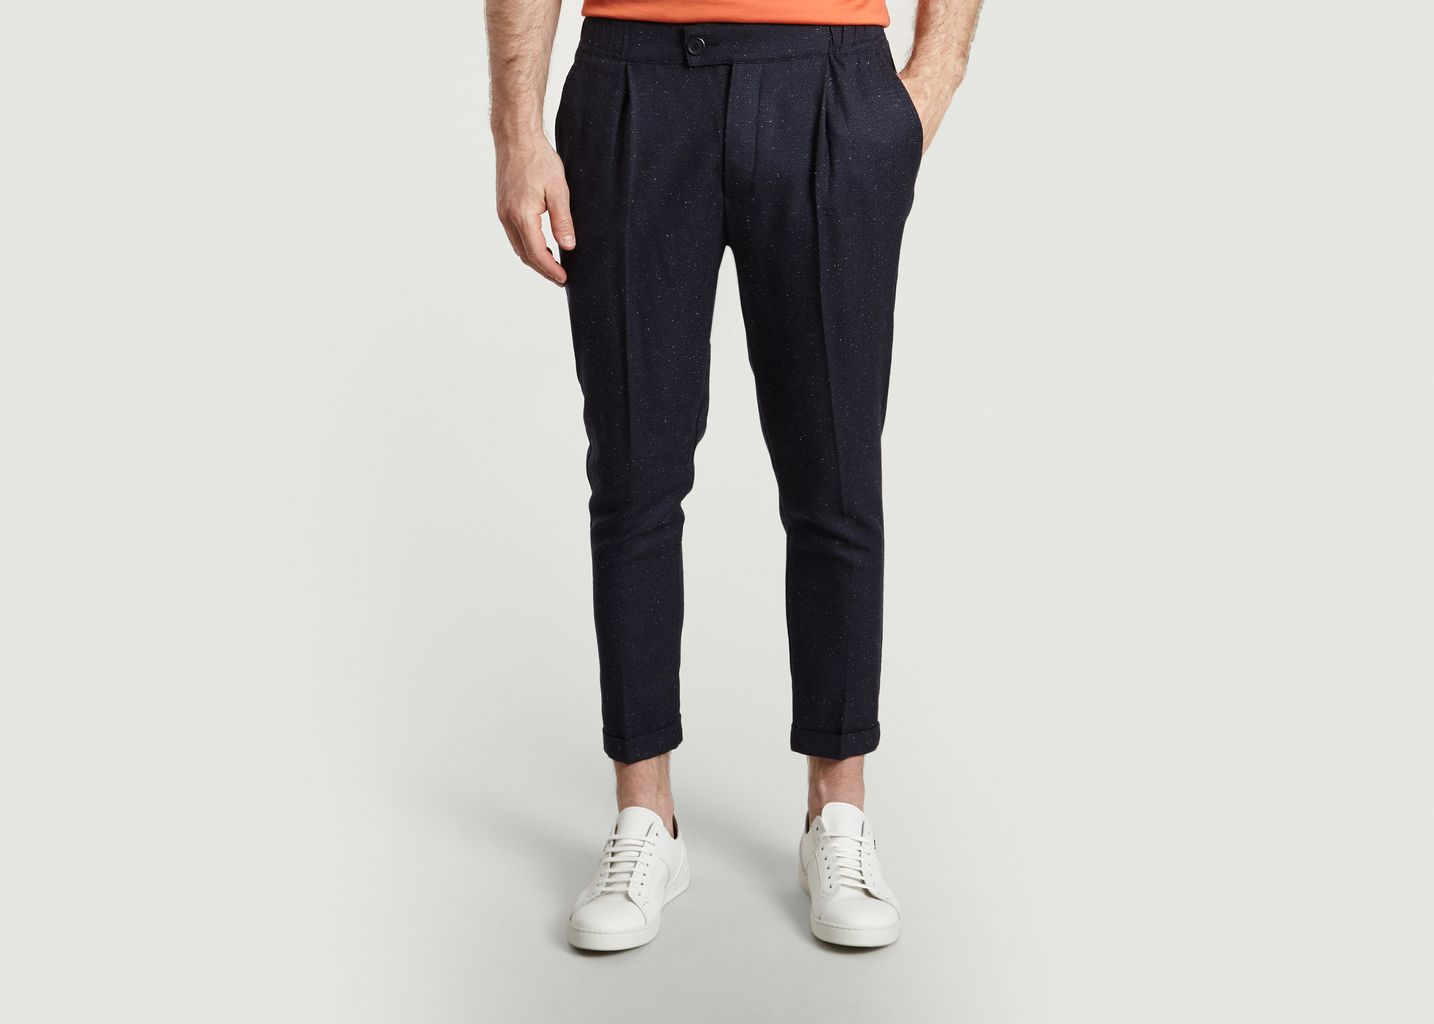 Pantalon GN11 - Commune de Paris